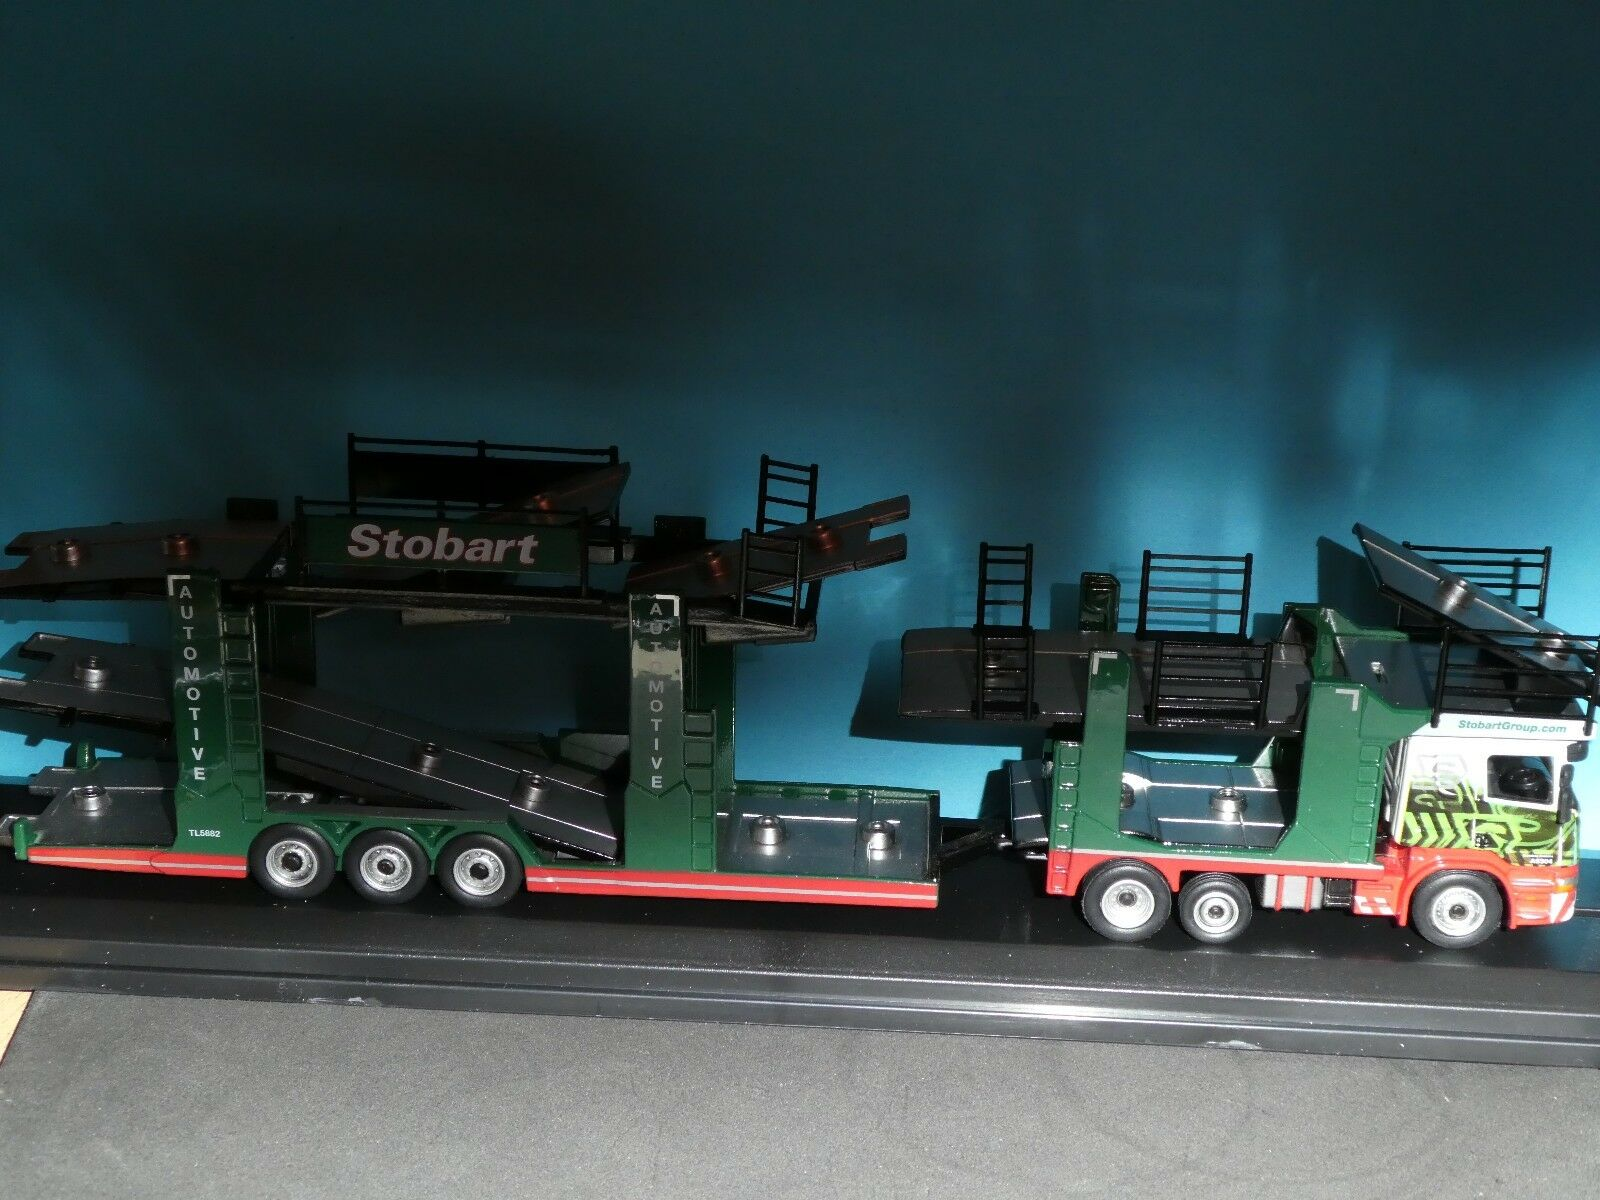 Scania Car Transporter up to 11 vehicles Eddie Stobart  by Oxford 1 76 00 gauge